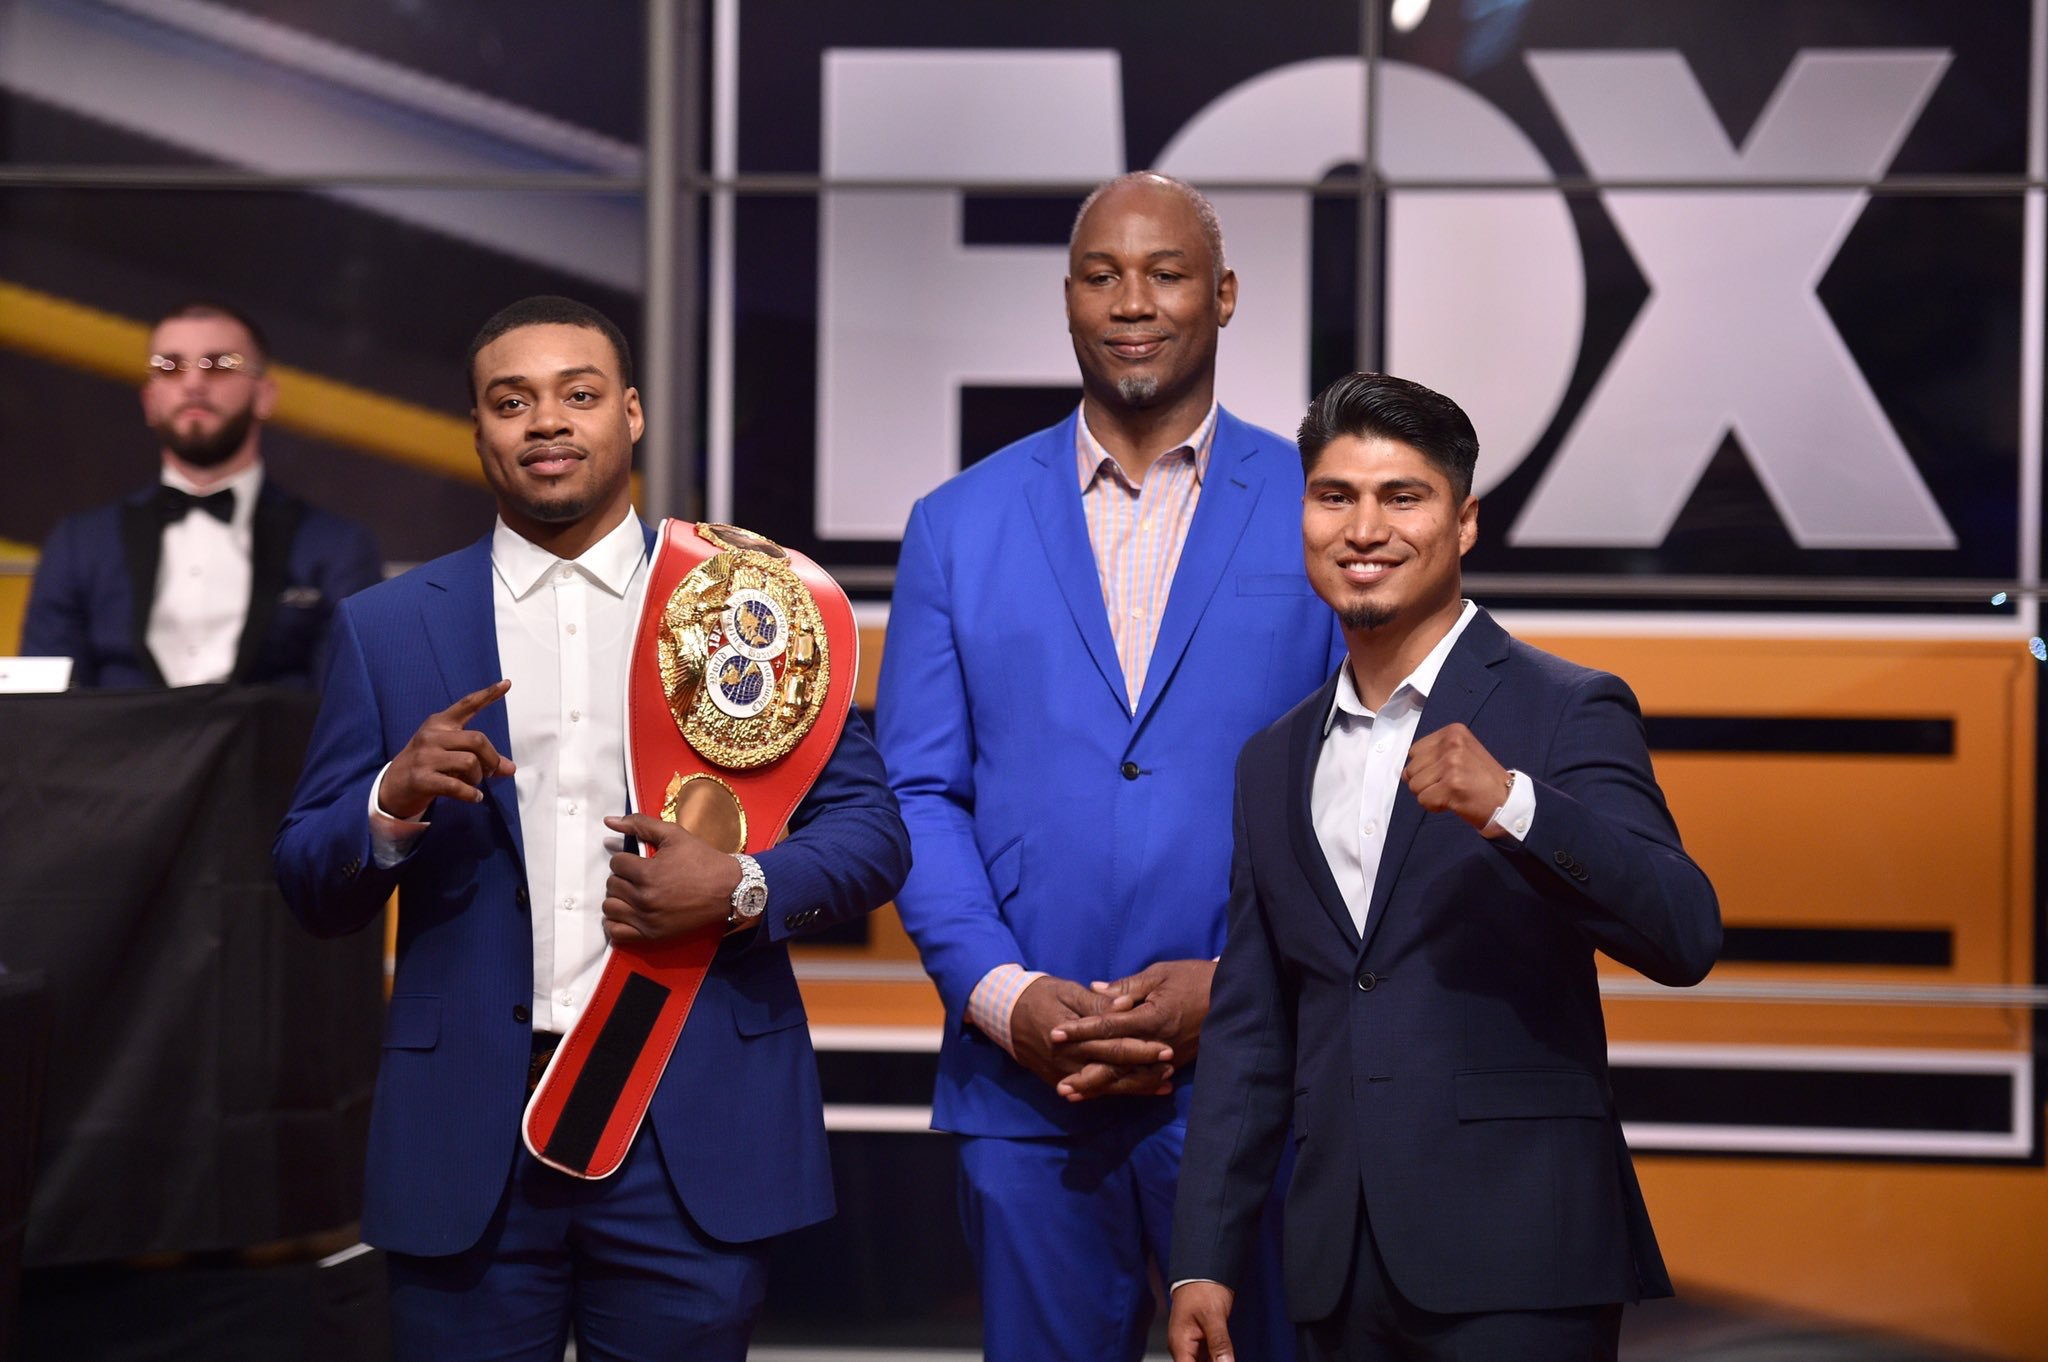 675A206E CEE8 4CA3 A944 446C796EE69B - Errol Spence Jr: Out To Prove He Is The Truth